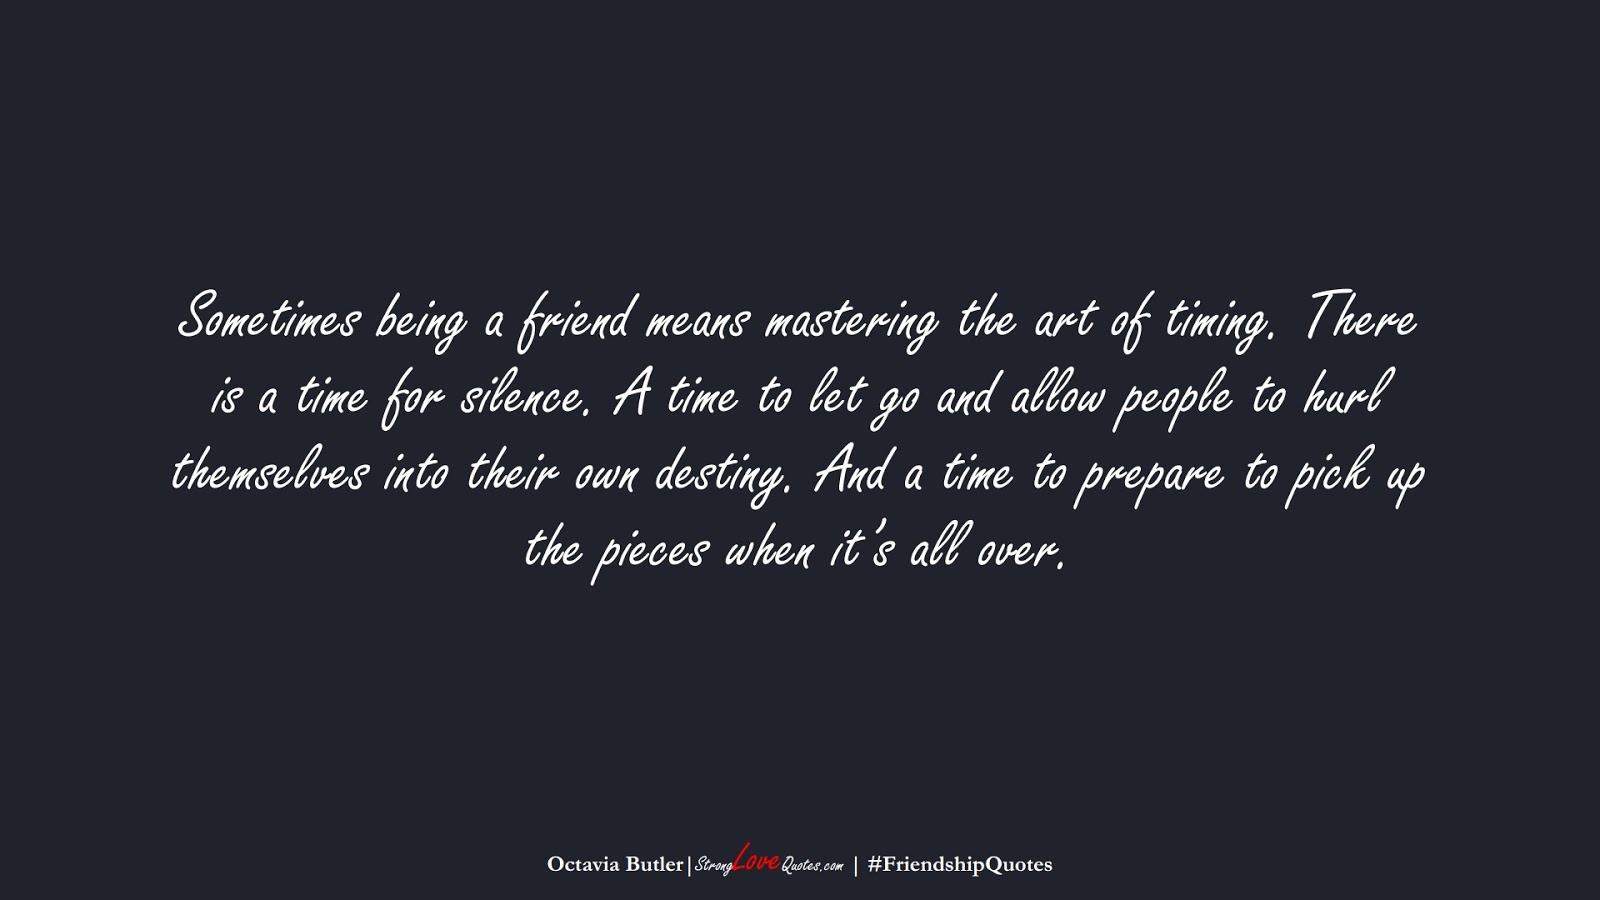 Sometimes being a friend means mastering the art of timing. There is a time for silence. A time to let go and allow people to hurl themselves into their own destiny. And a time to prepare to pick up the pieces when it's all over. (Octavia Butler);  #FriendshipQuotes